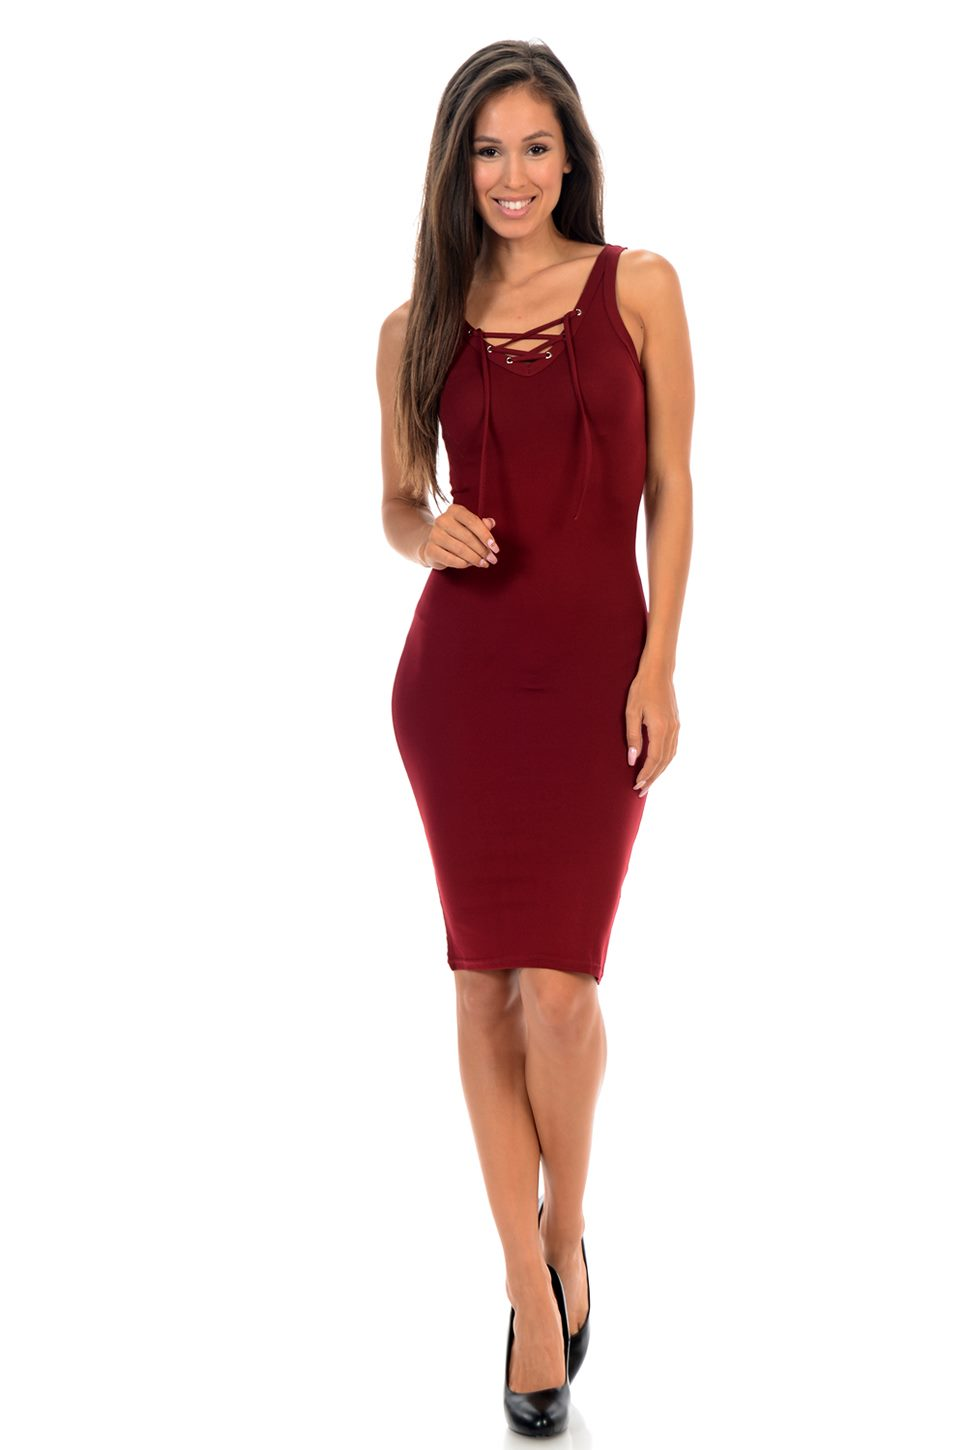 Diamante Fashion Women's Dress - Style C140